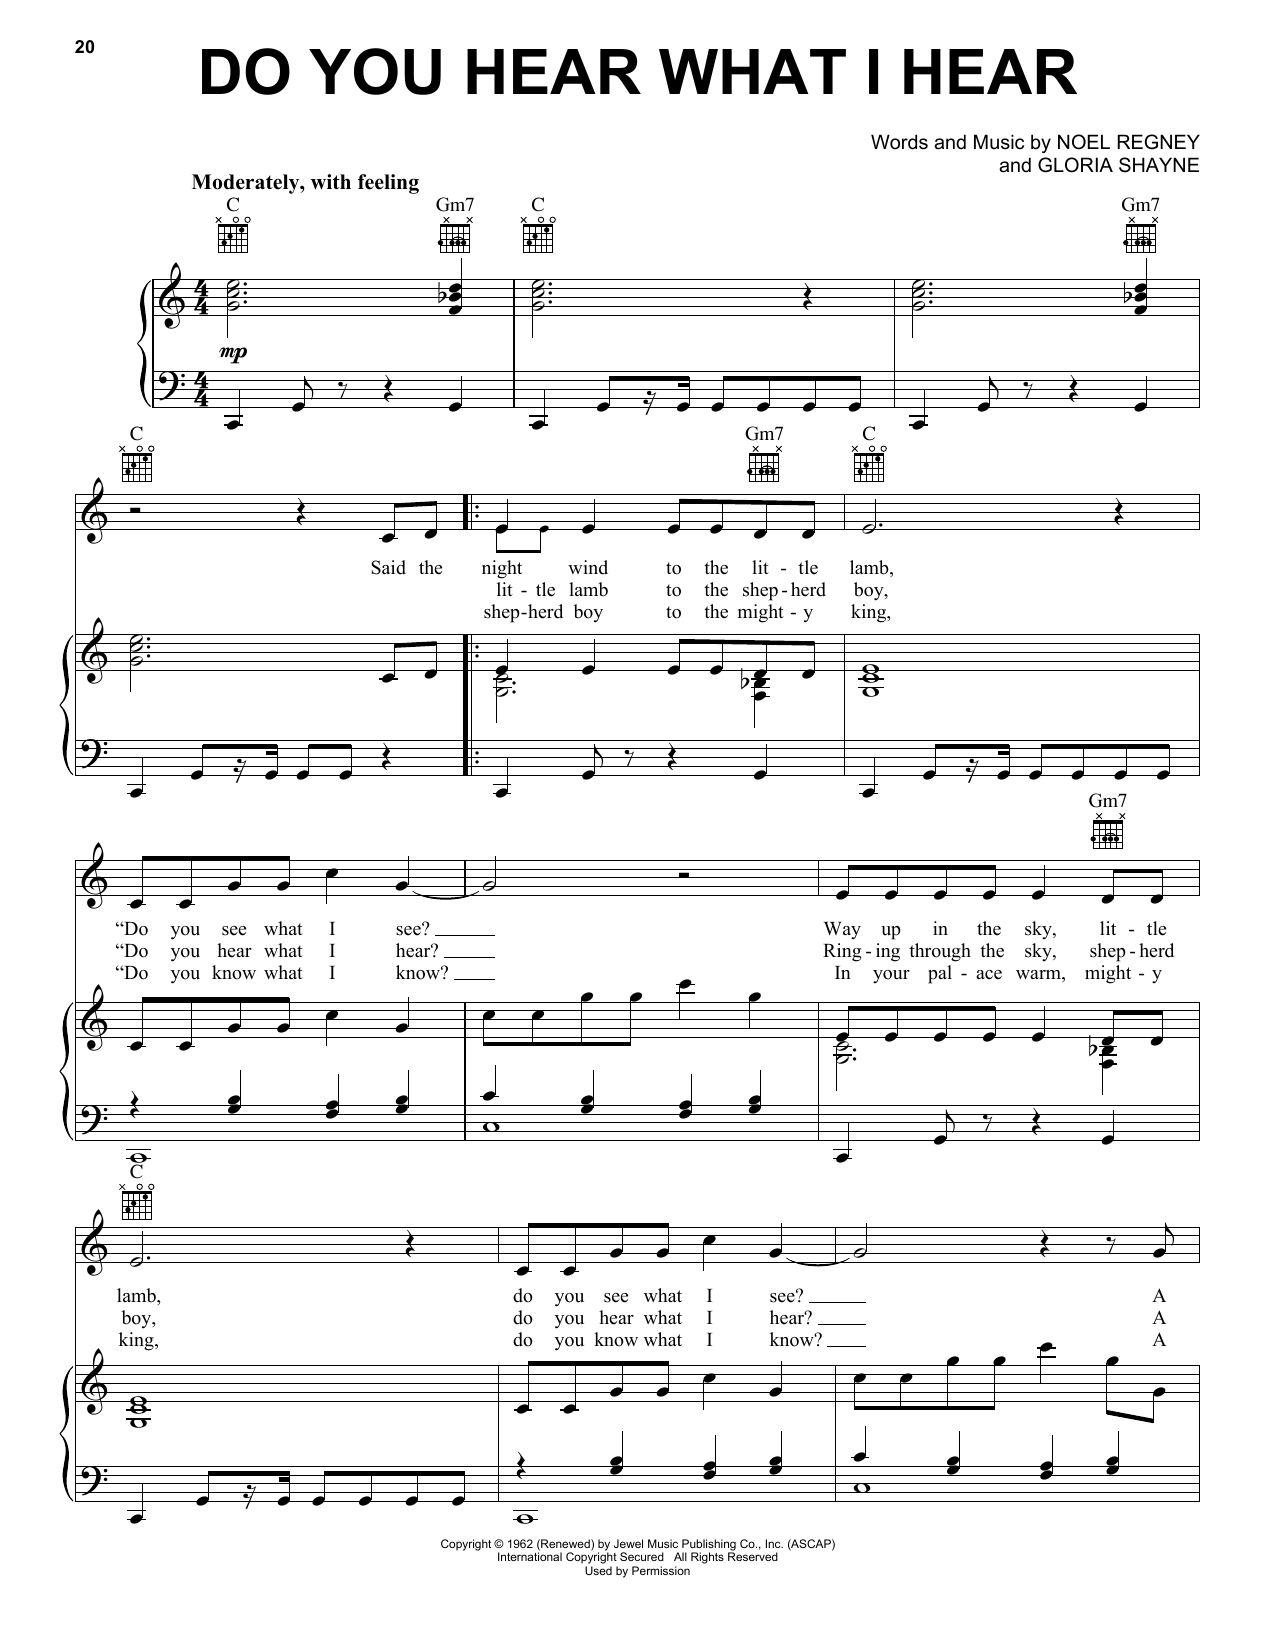 Gloria Shayne Do You Hear What I Hear sheet music notes printable PDF score